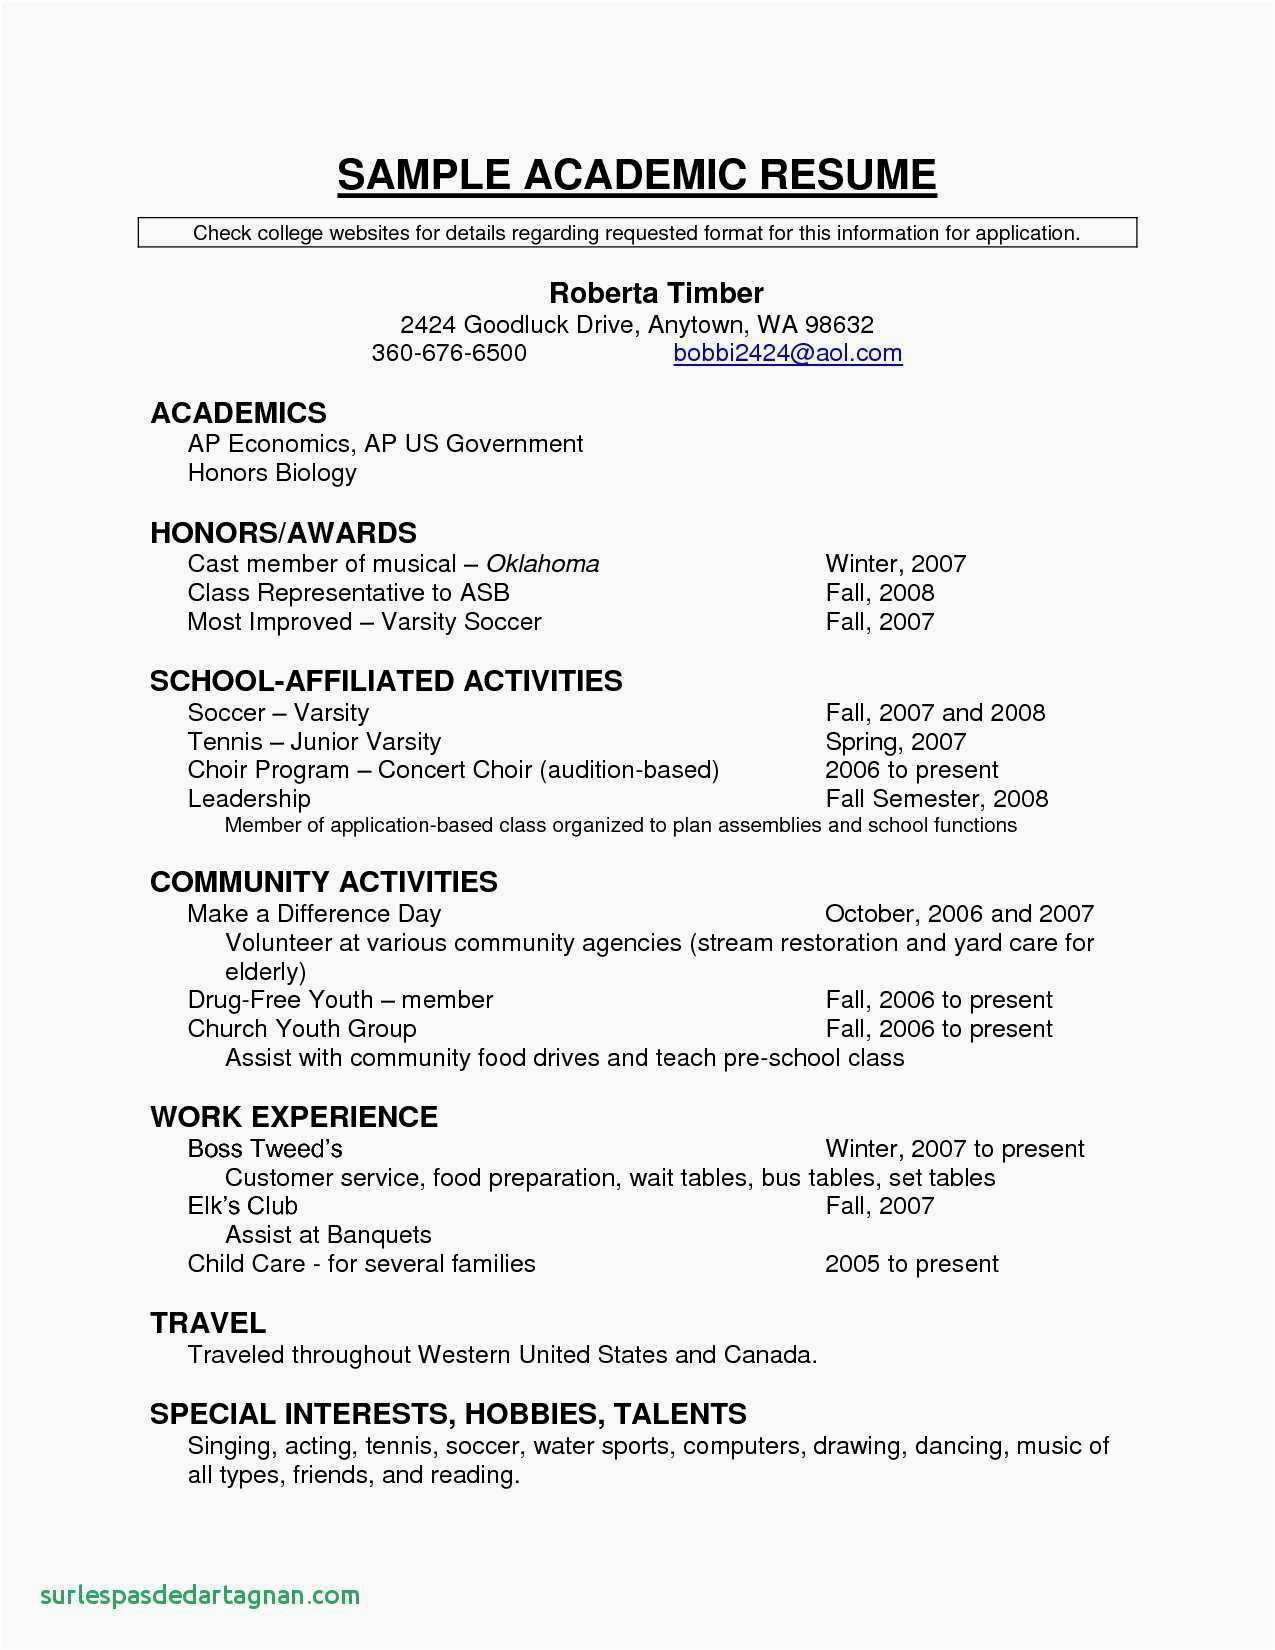 Teaching Cover Letter Examples - wikiresume.com